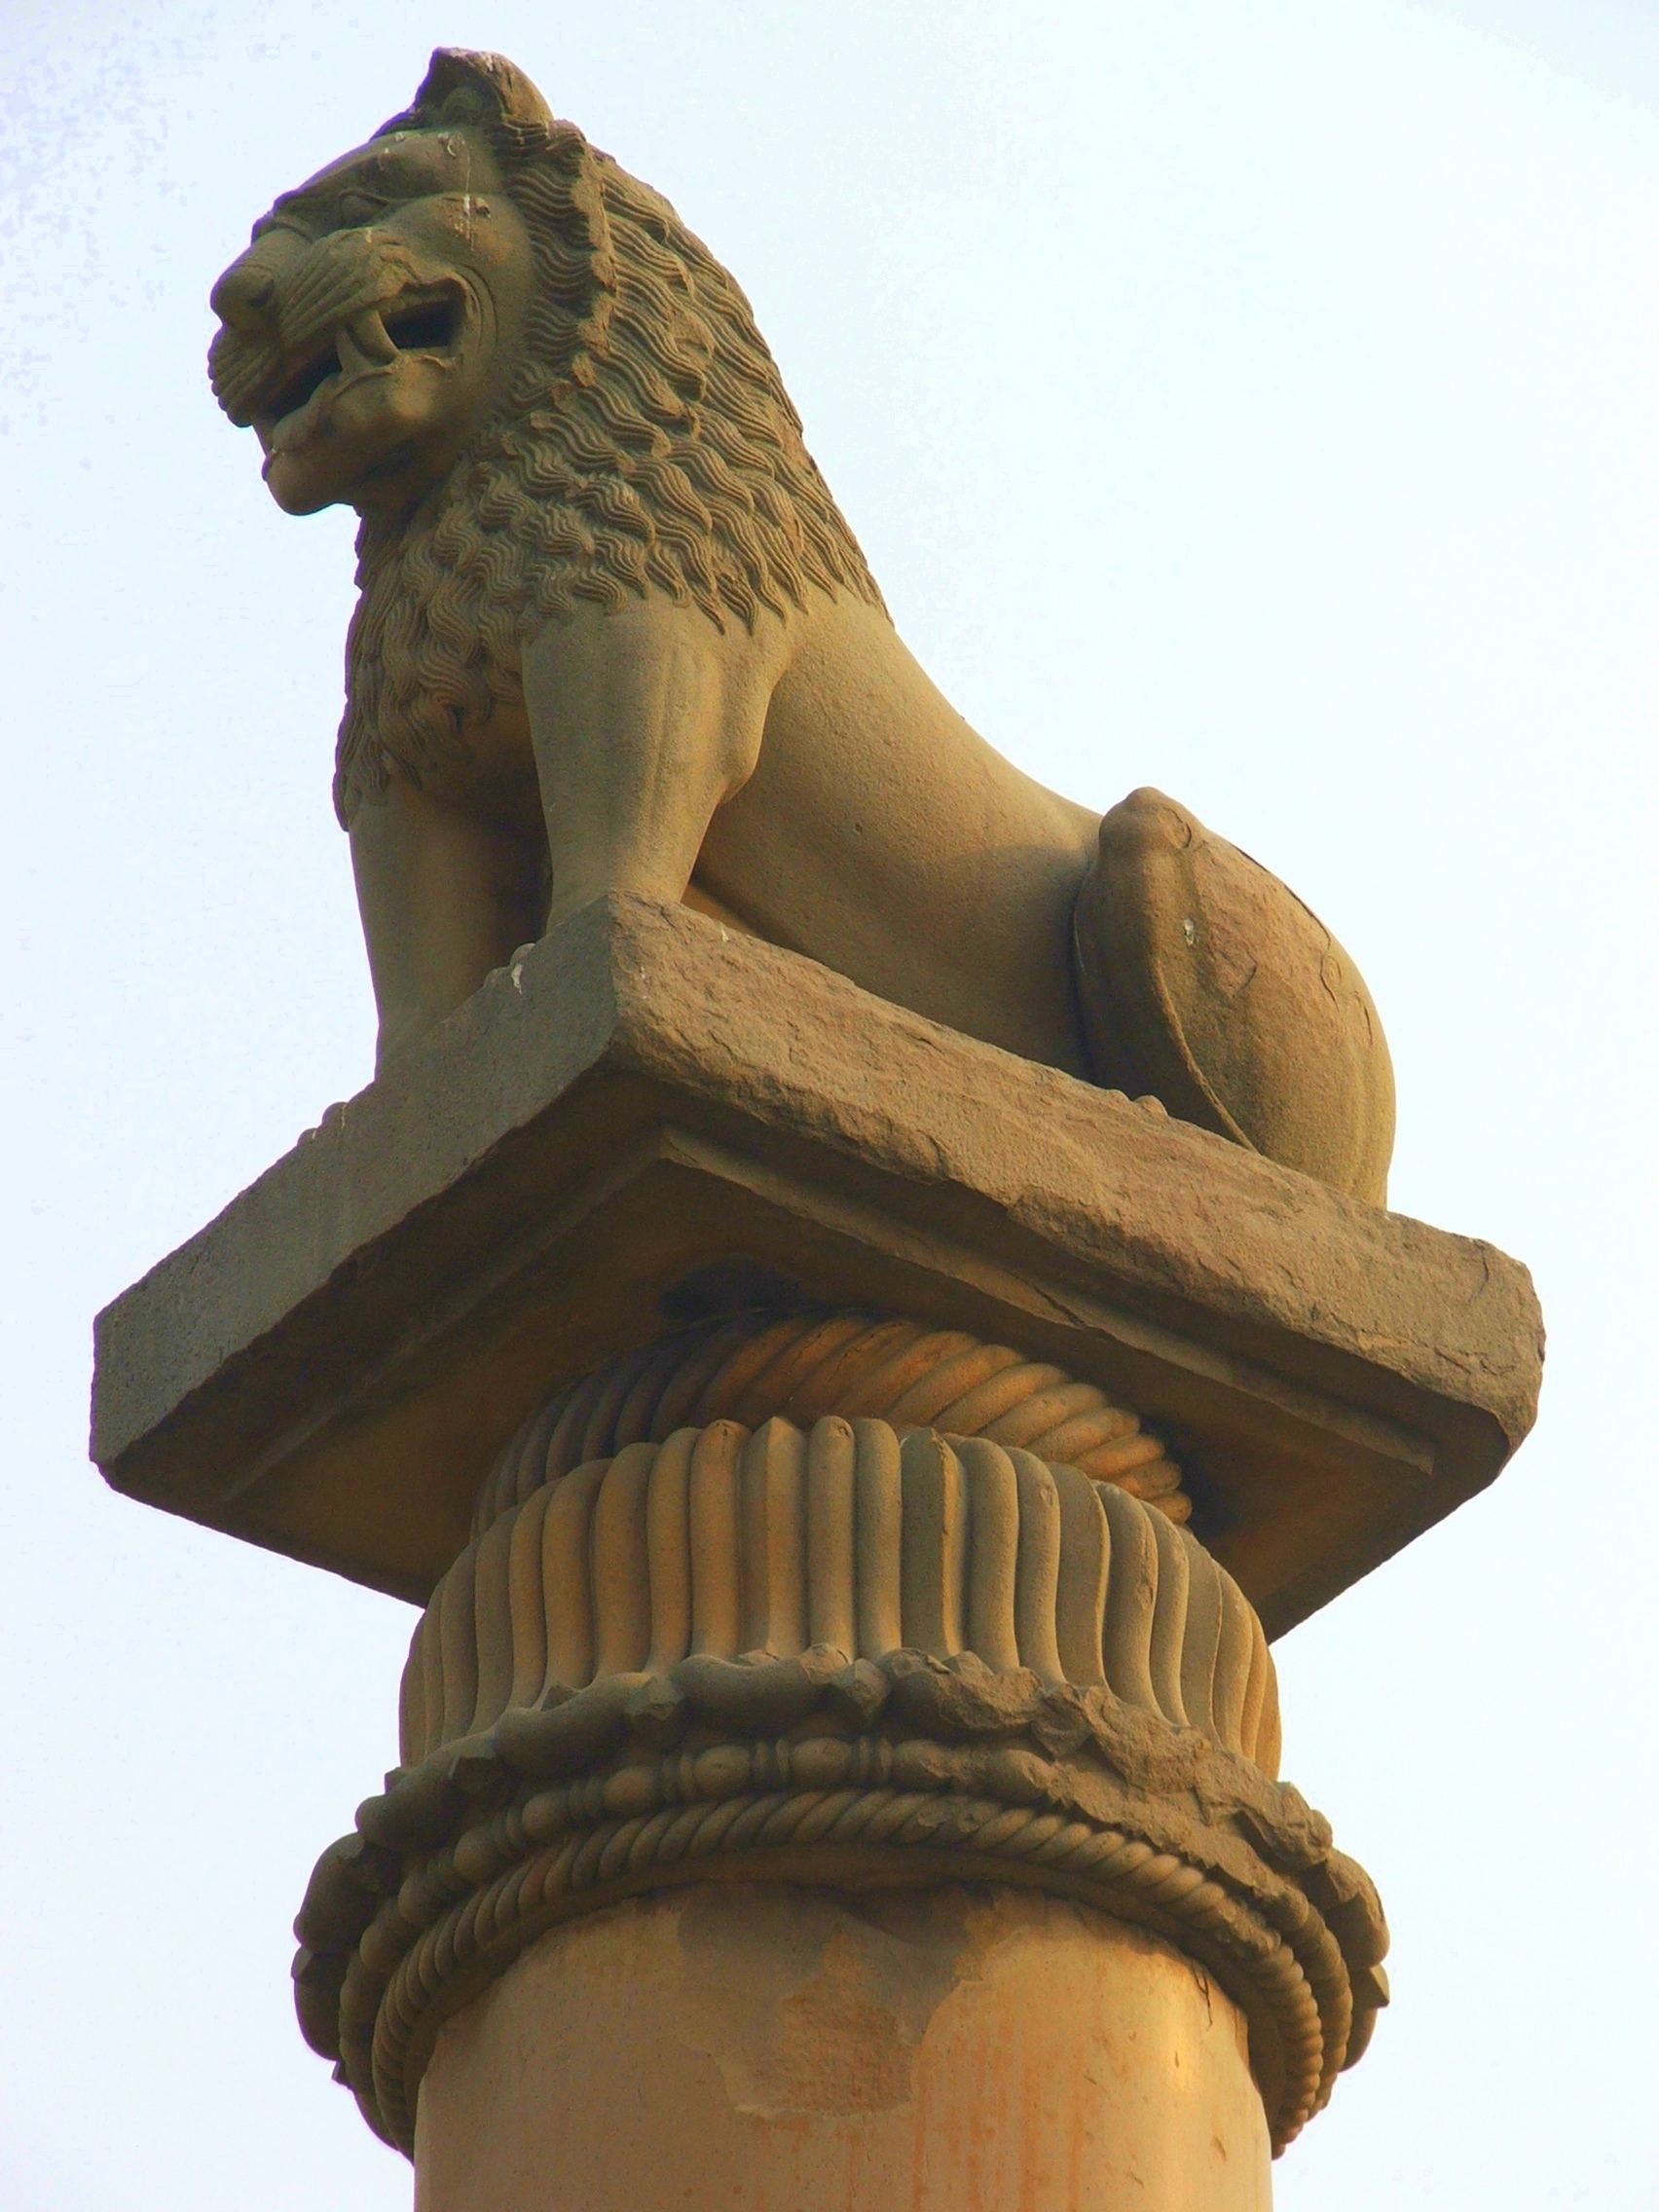 Asokan pillar at Vaishali, Bihar, India